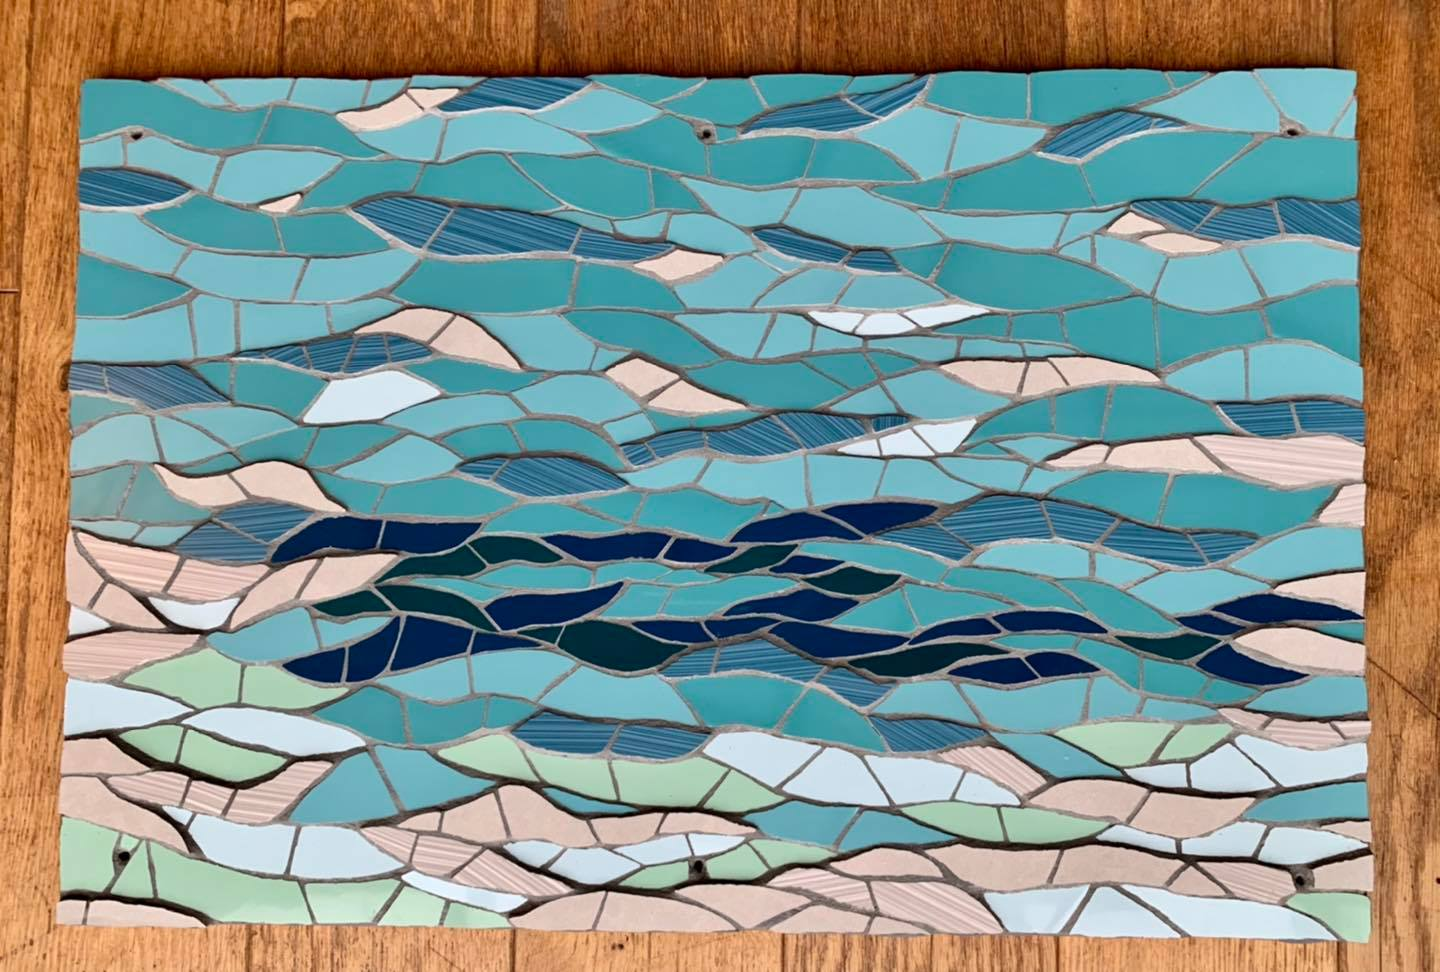 Seascape mosaic for a bathroom